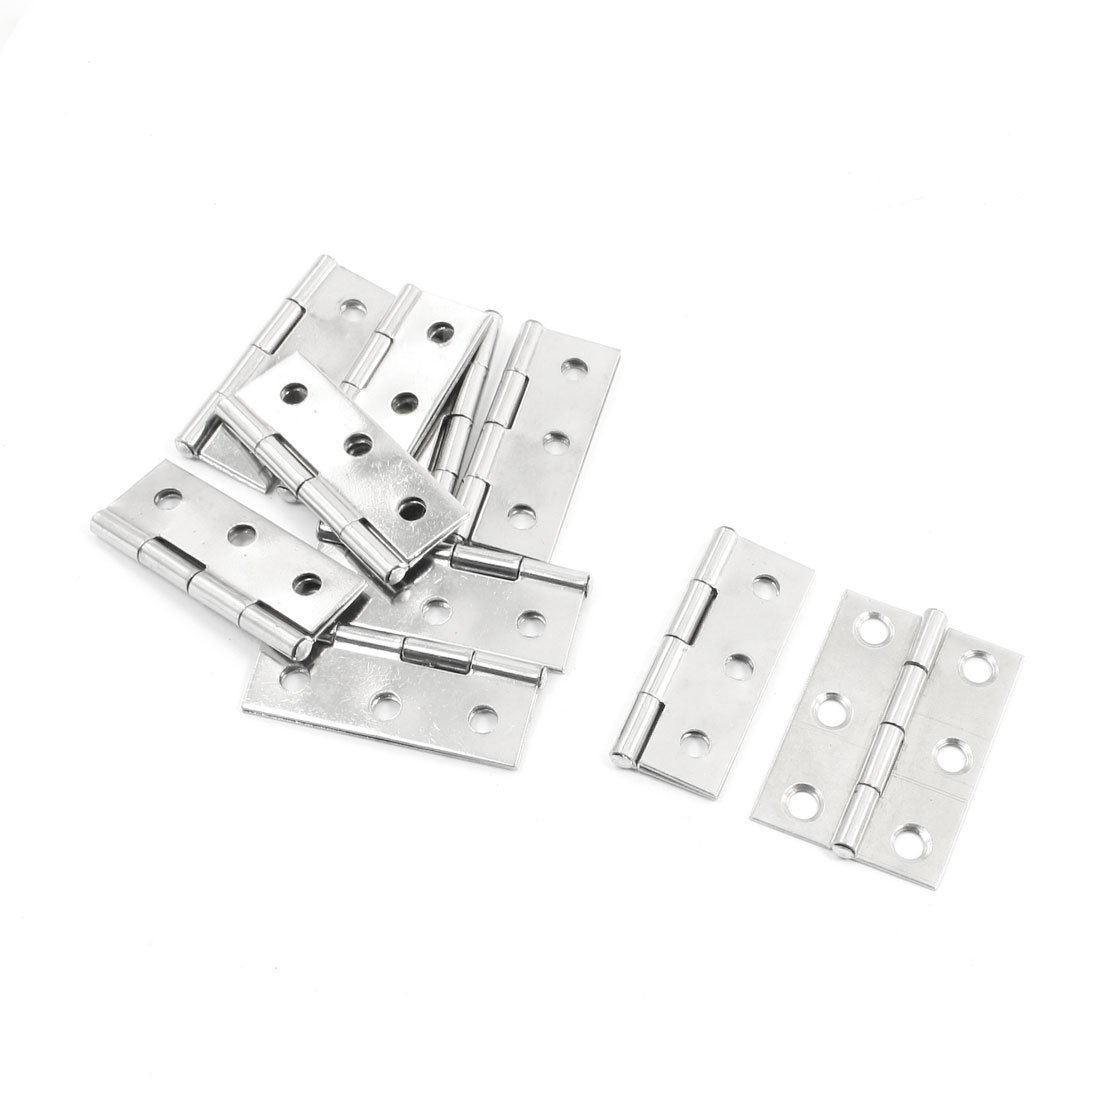 Iron plate galvanized cheap metal buffer automatic door hinge